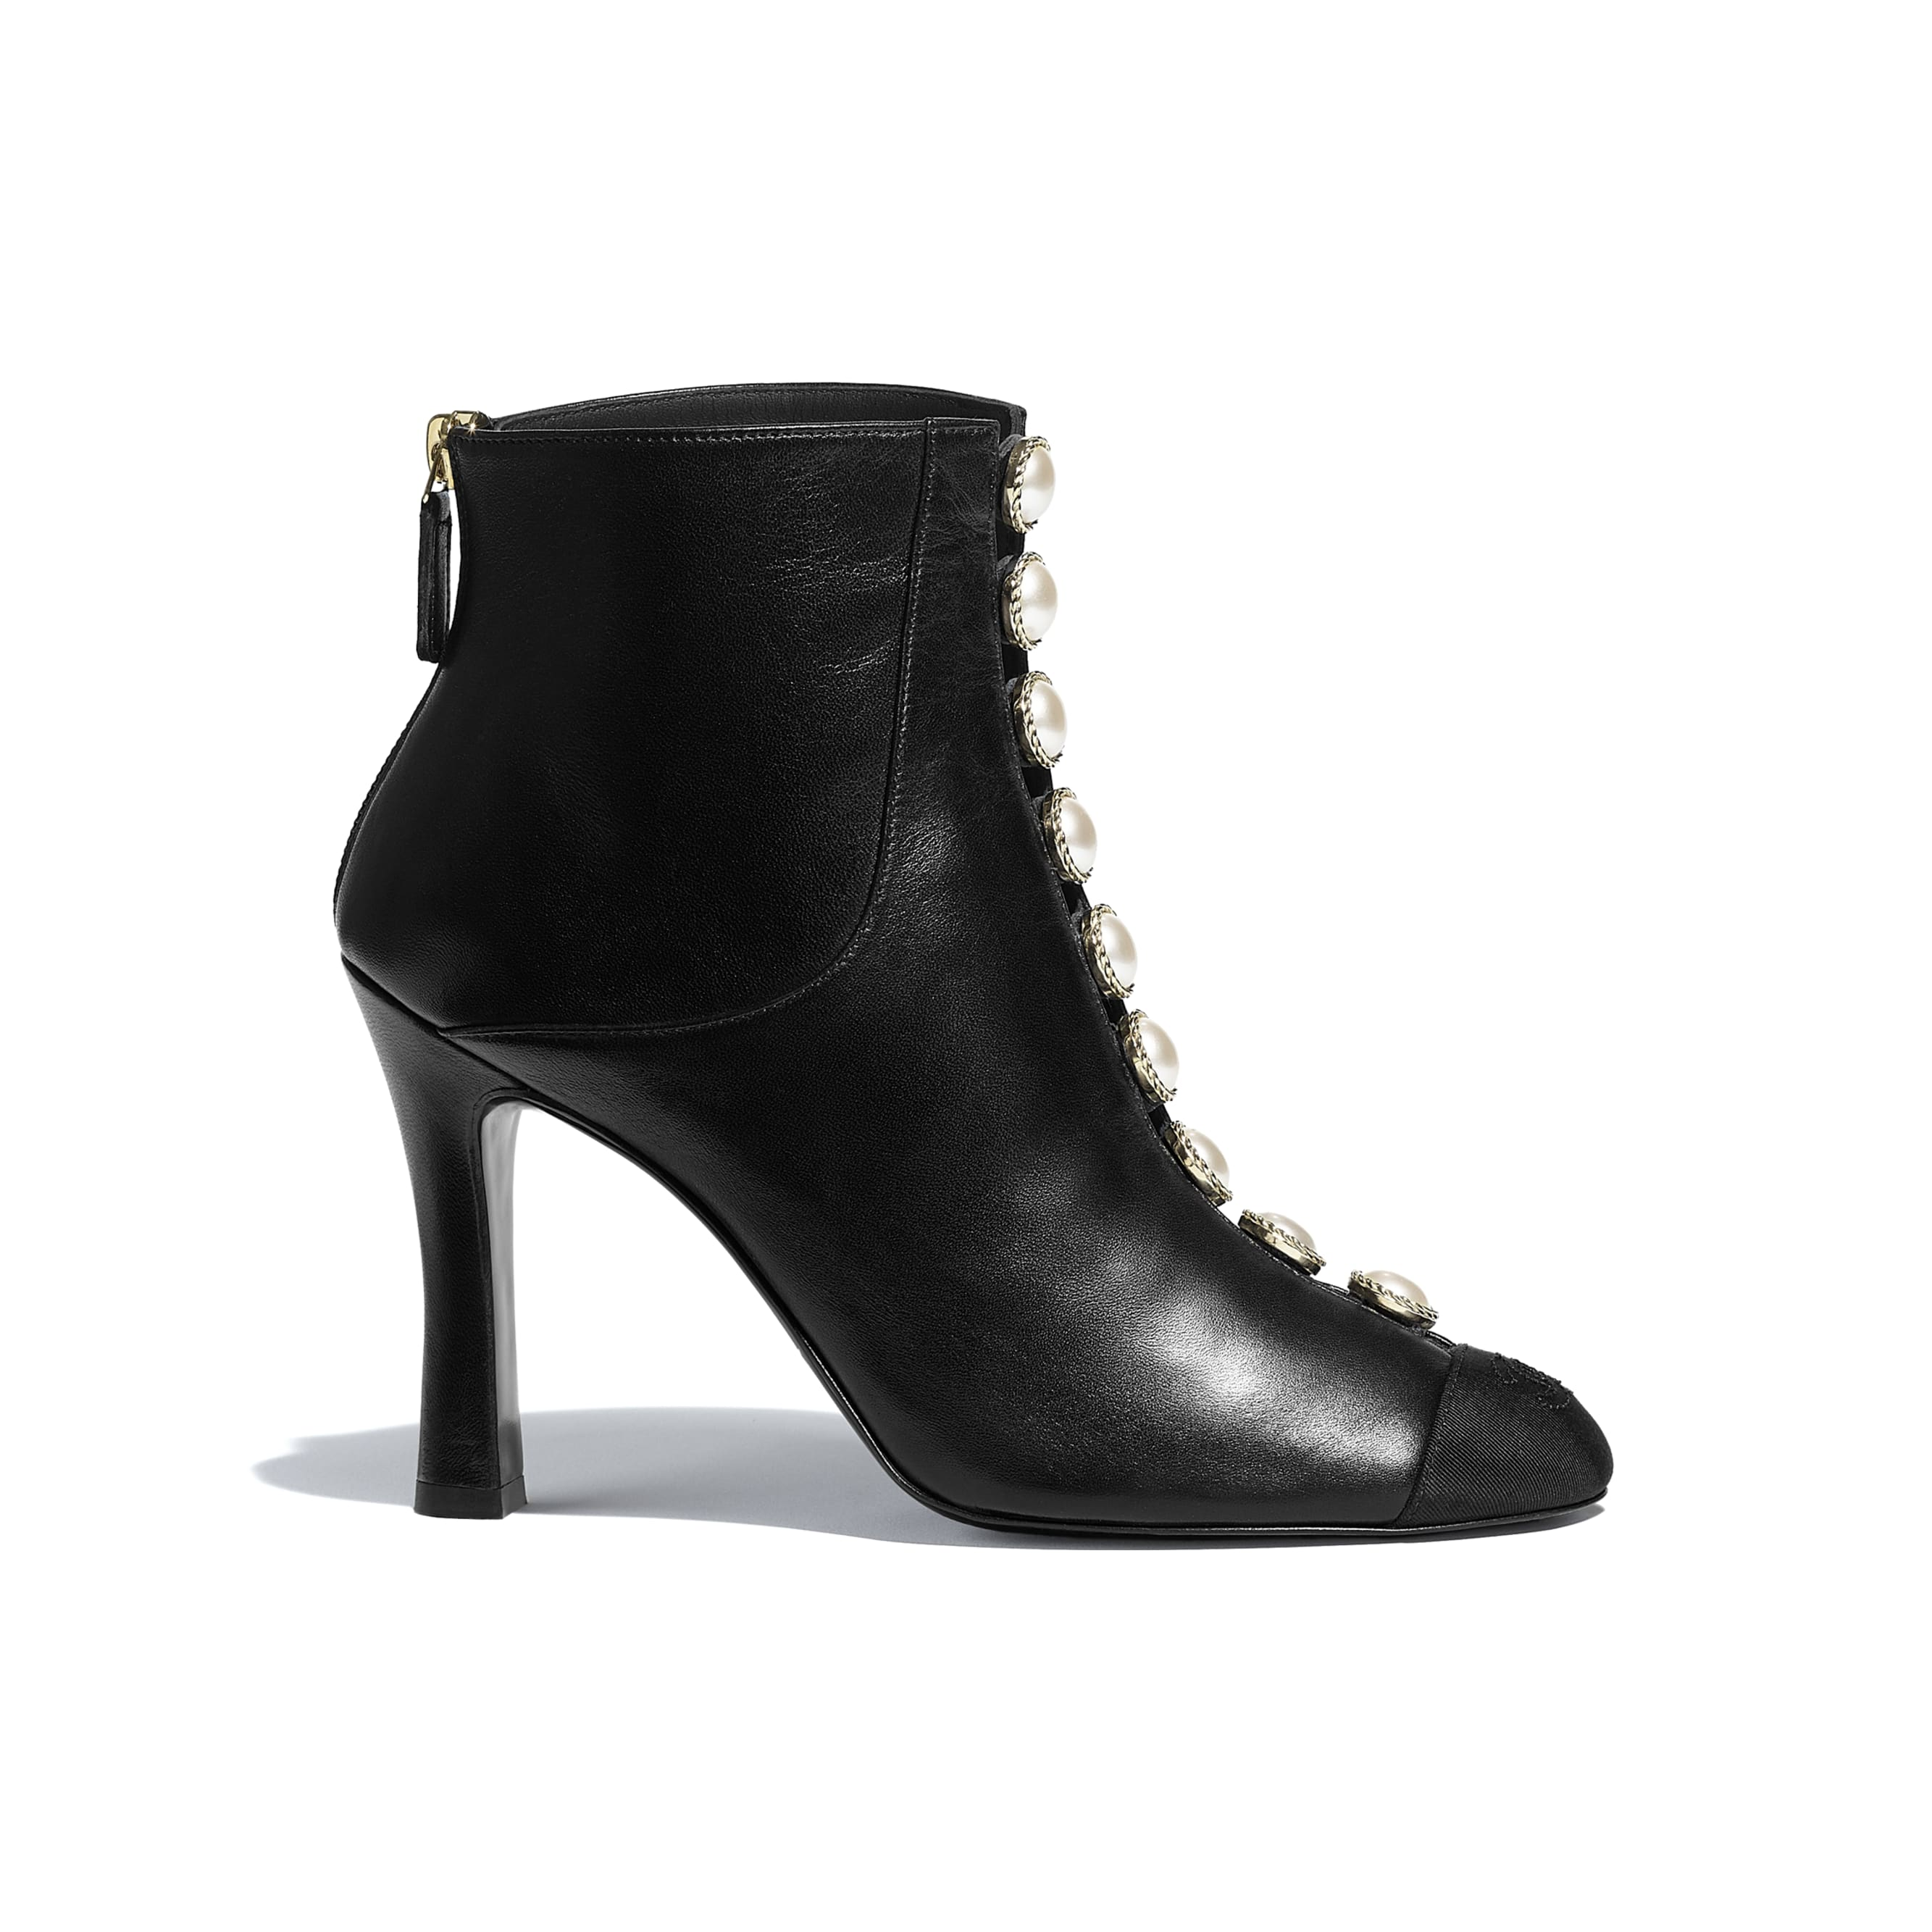 Ankle Boots - Black - Lambskin & Grosgrain - CHANEL - Default view - see standard sized version